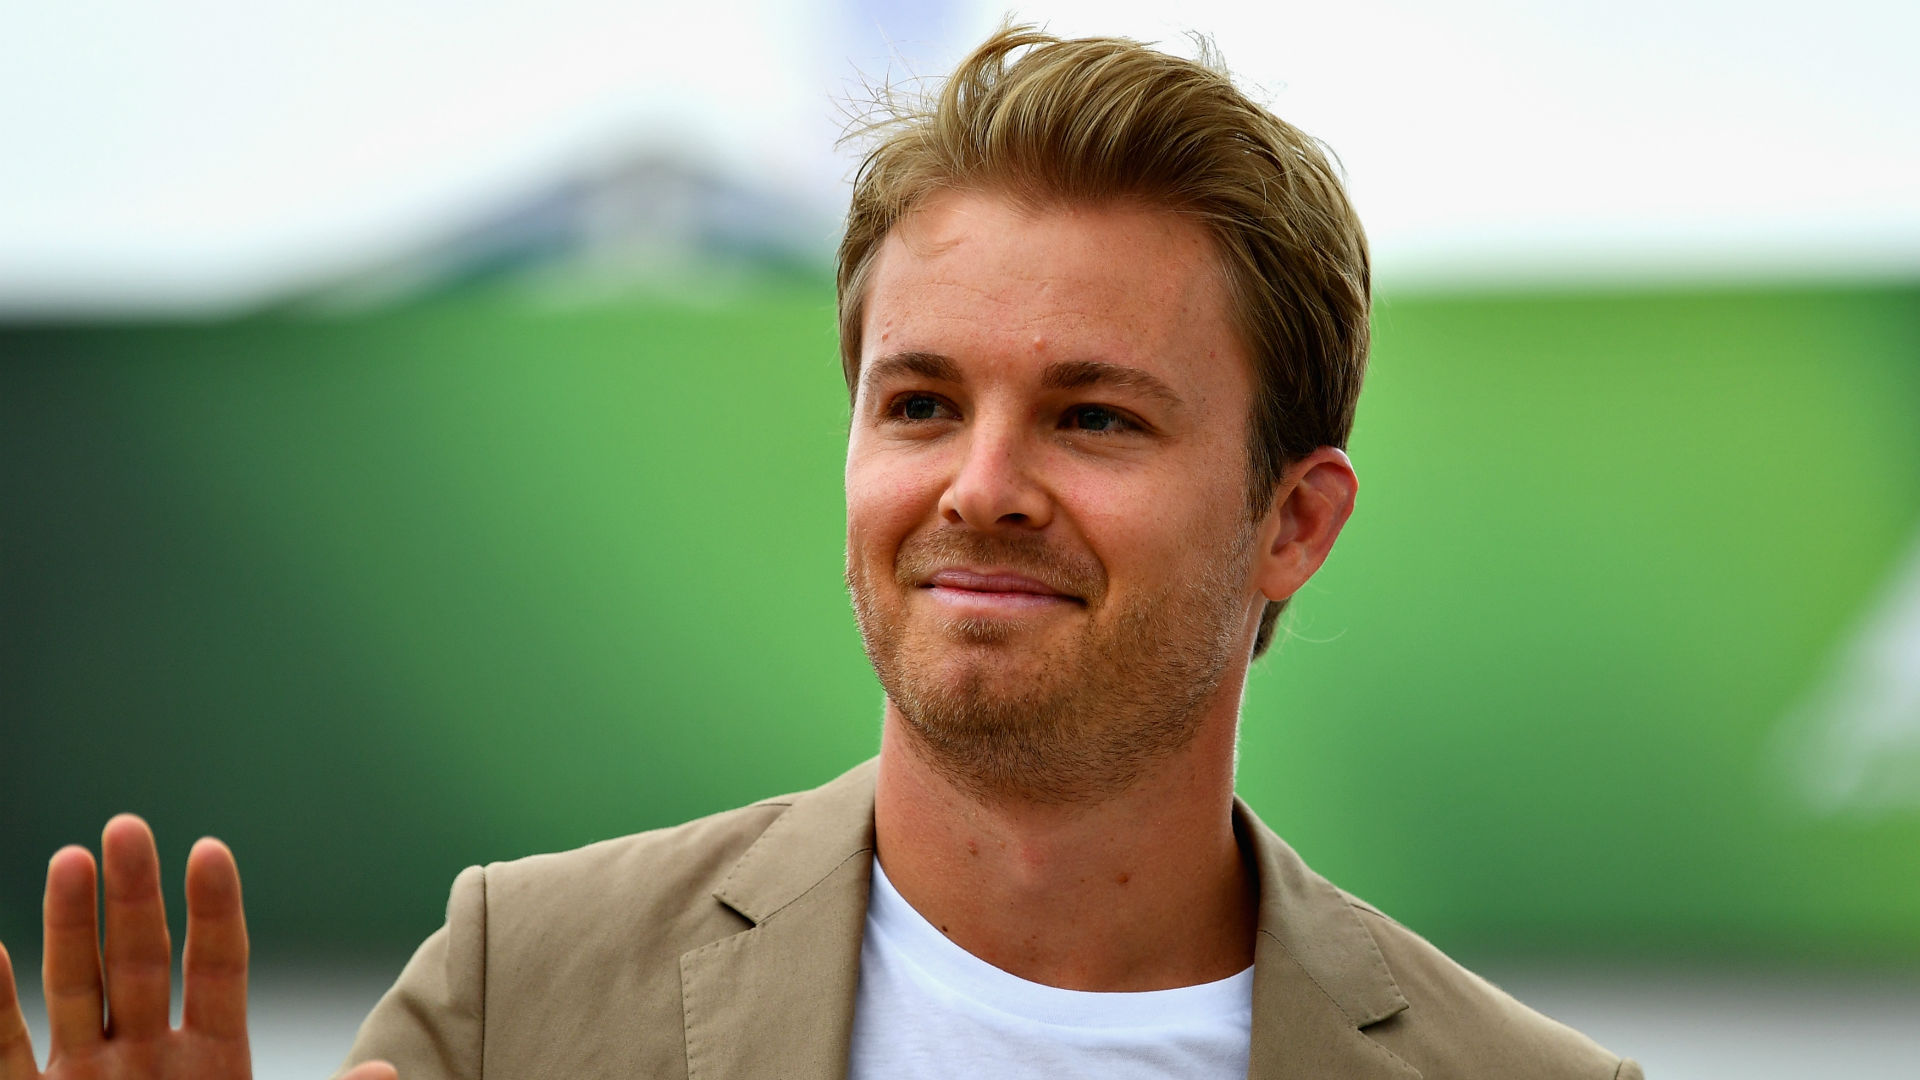 Formula E shareholder and investor Nico Rosberg will put the new electric car through its paces in Berlin on May 19.